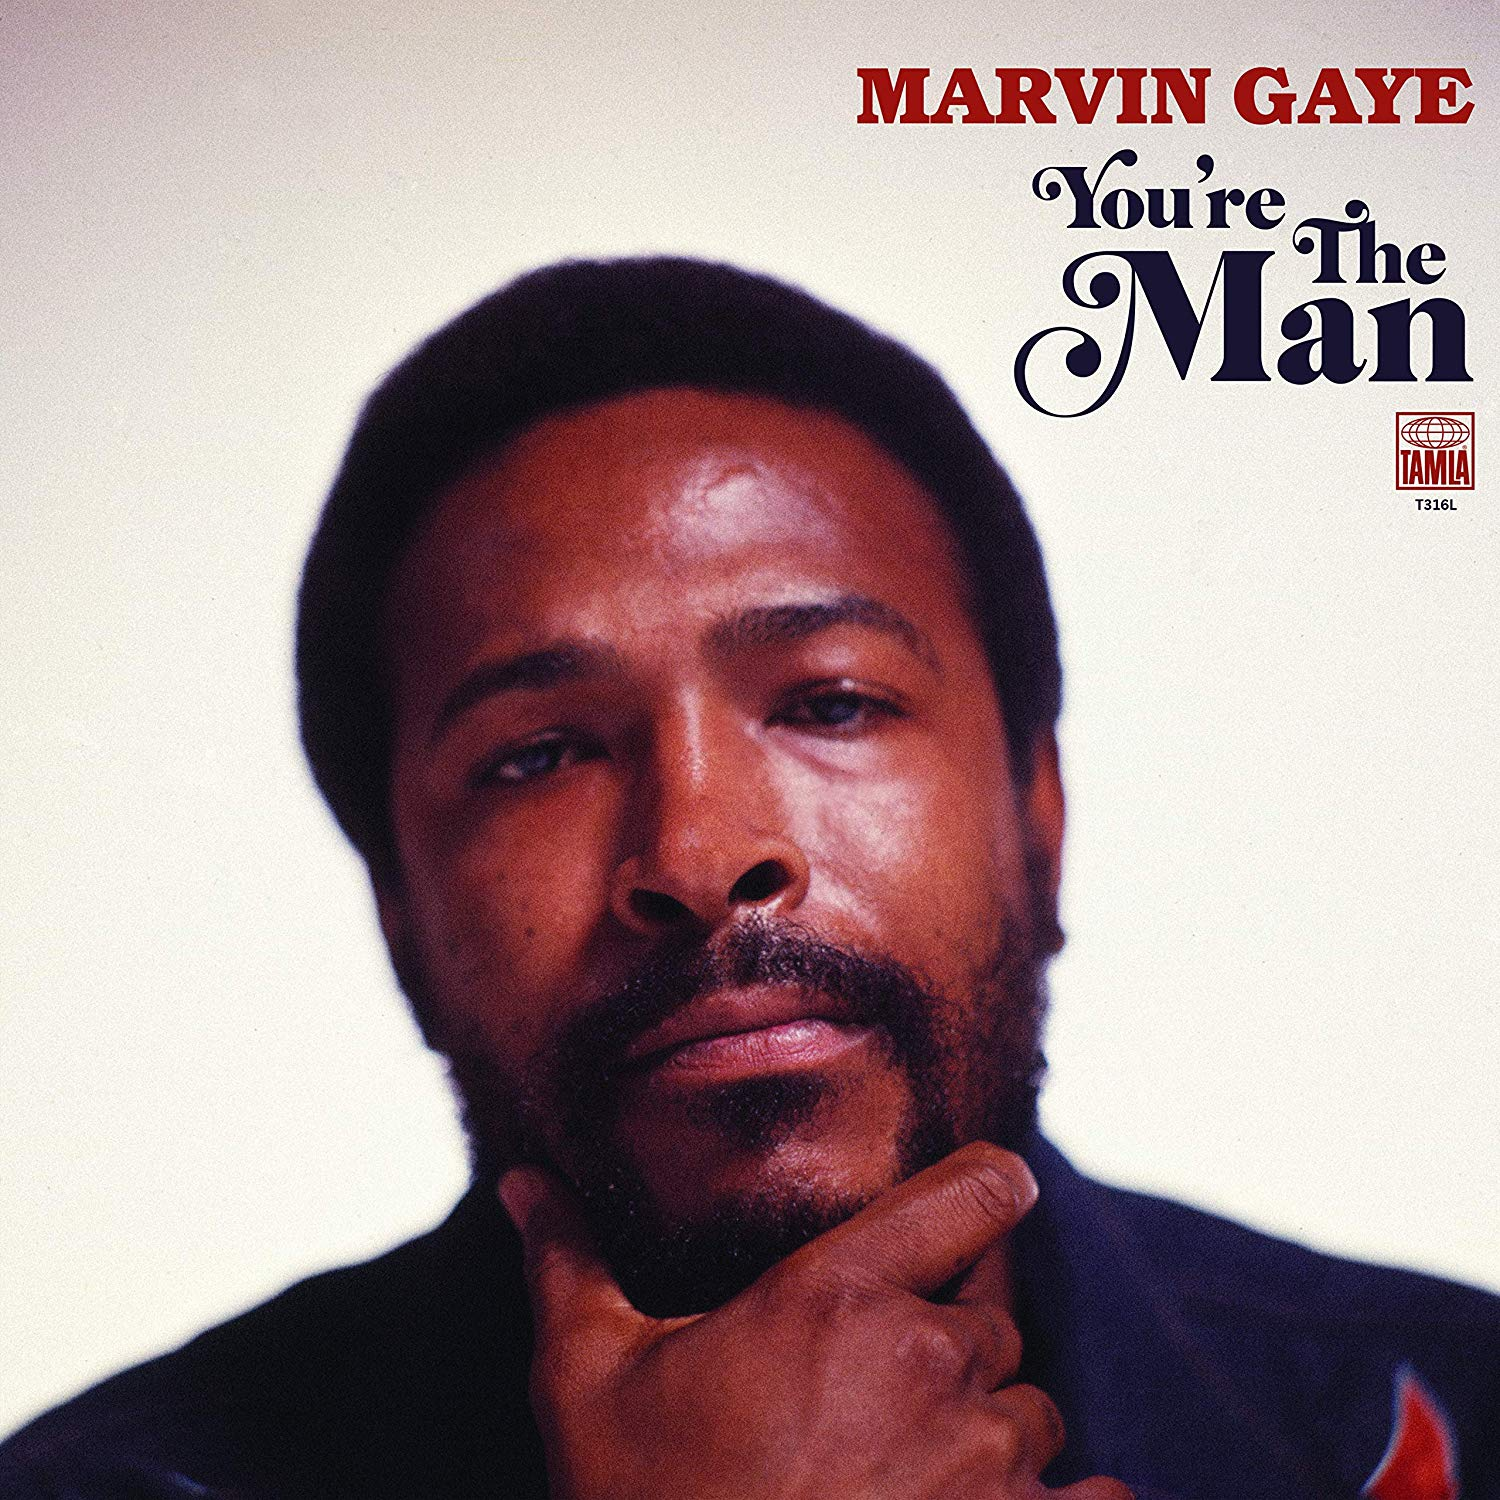 298f0bf020710 ... the monumental What s Going On. The release coincides with the 60th  anniversary of the Motown label and also Marvin Gaye s 80th Birthday (April  2).